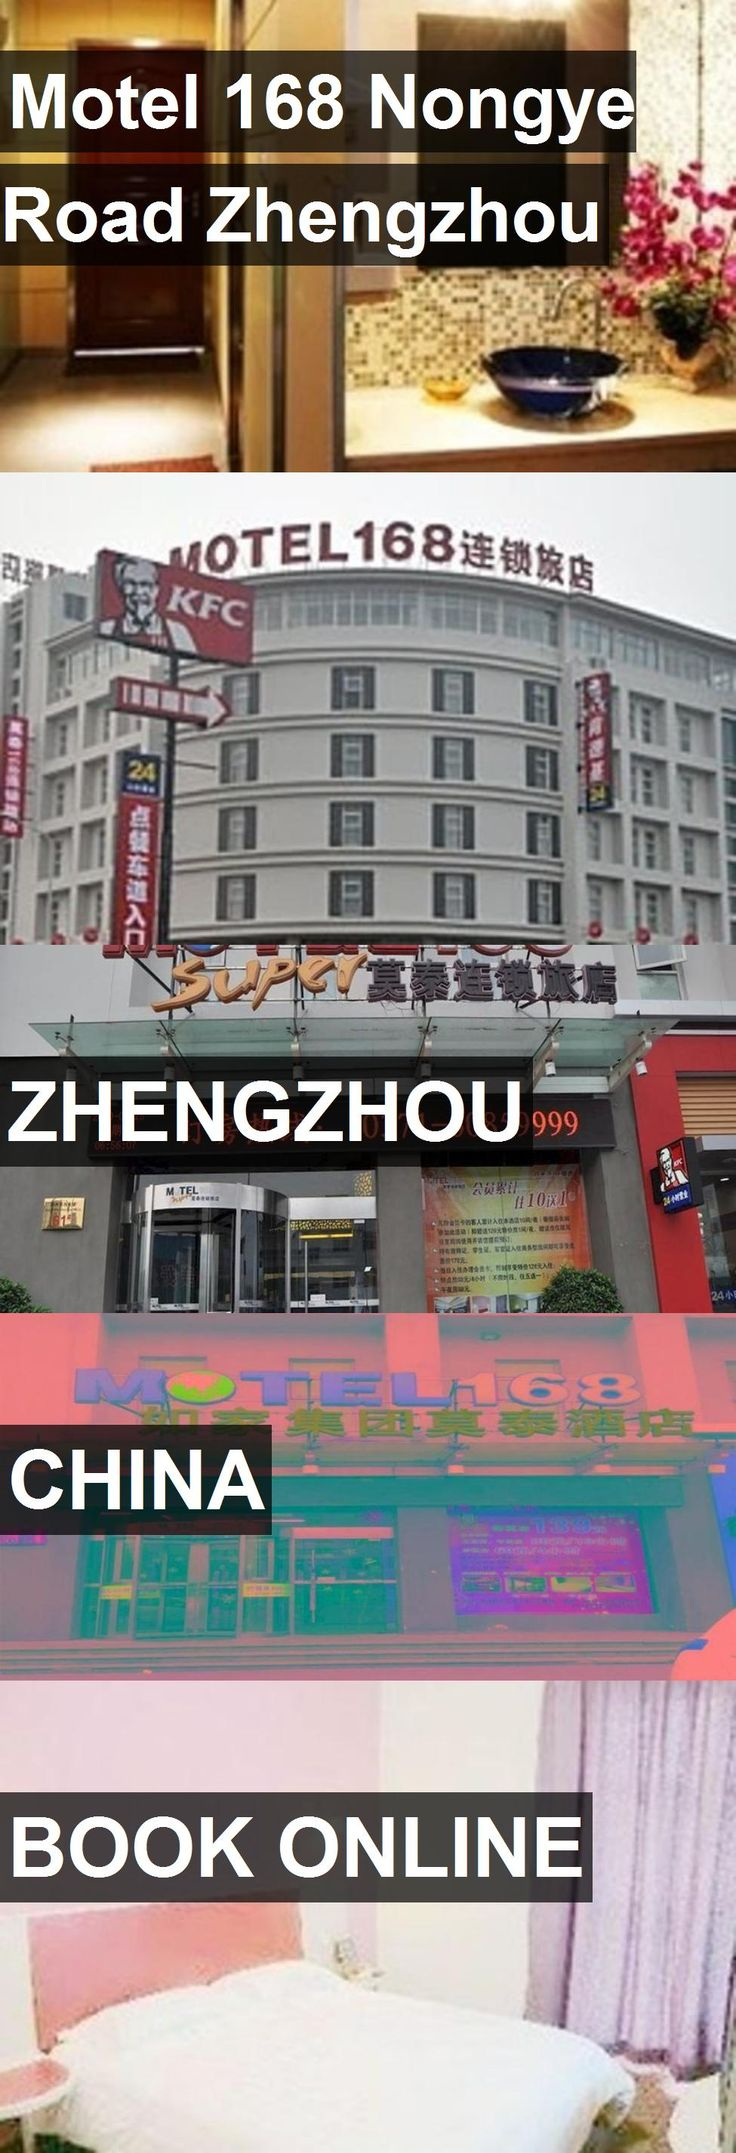 Hotel Motel 168 Nongye Road Zhengzhou in Zhengzhou, China. For more information, photos, reviews and best prices please follow the link. #China #Zhengzhou #travel #vacation #hotel